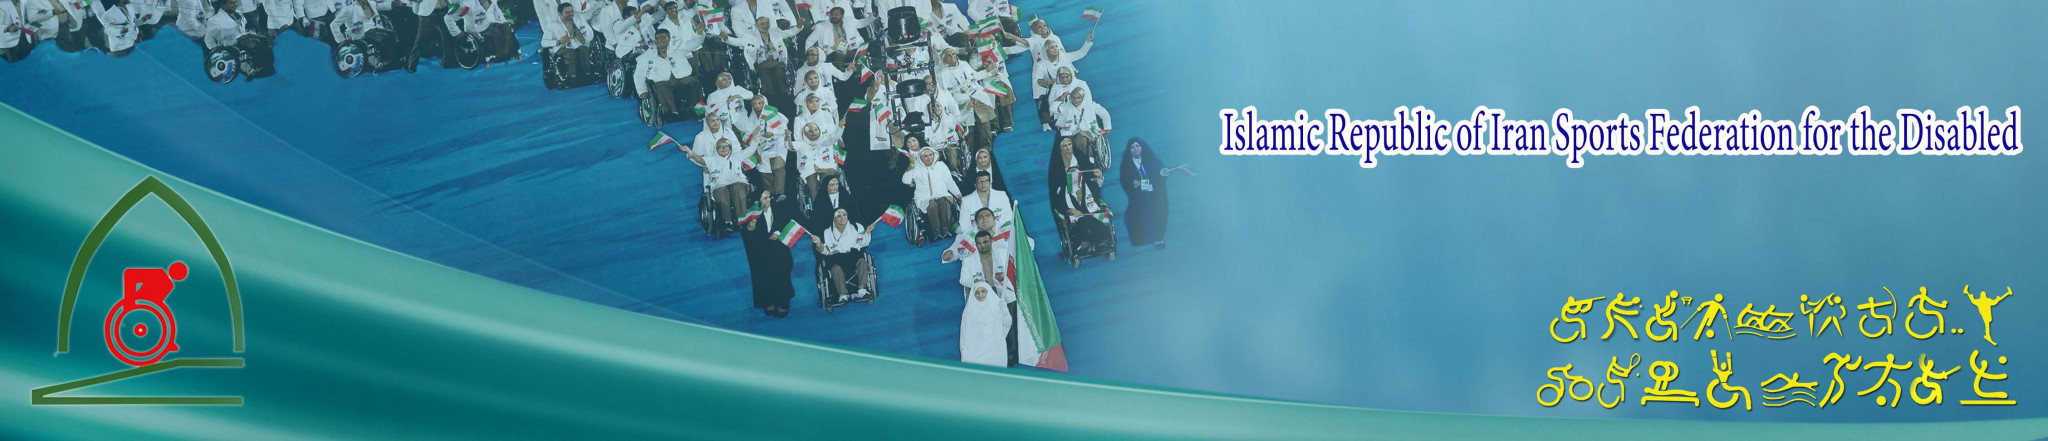 Iran set to form first women's Para powerlifting team with aim of competing at Paralympics